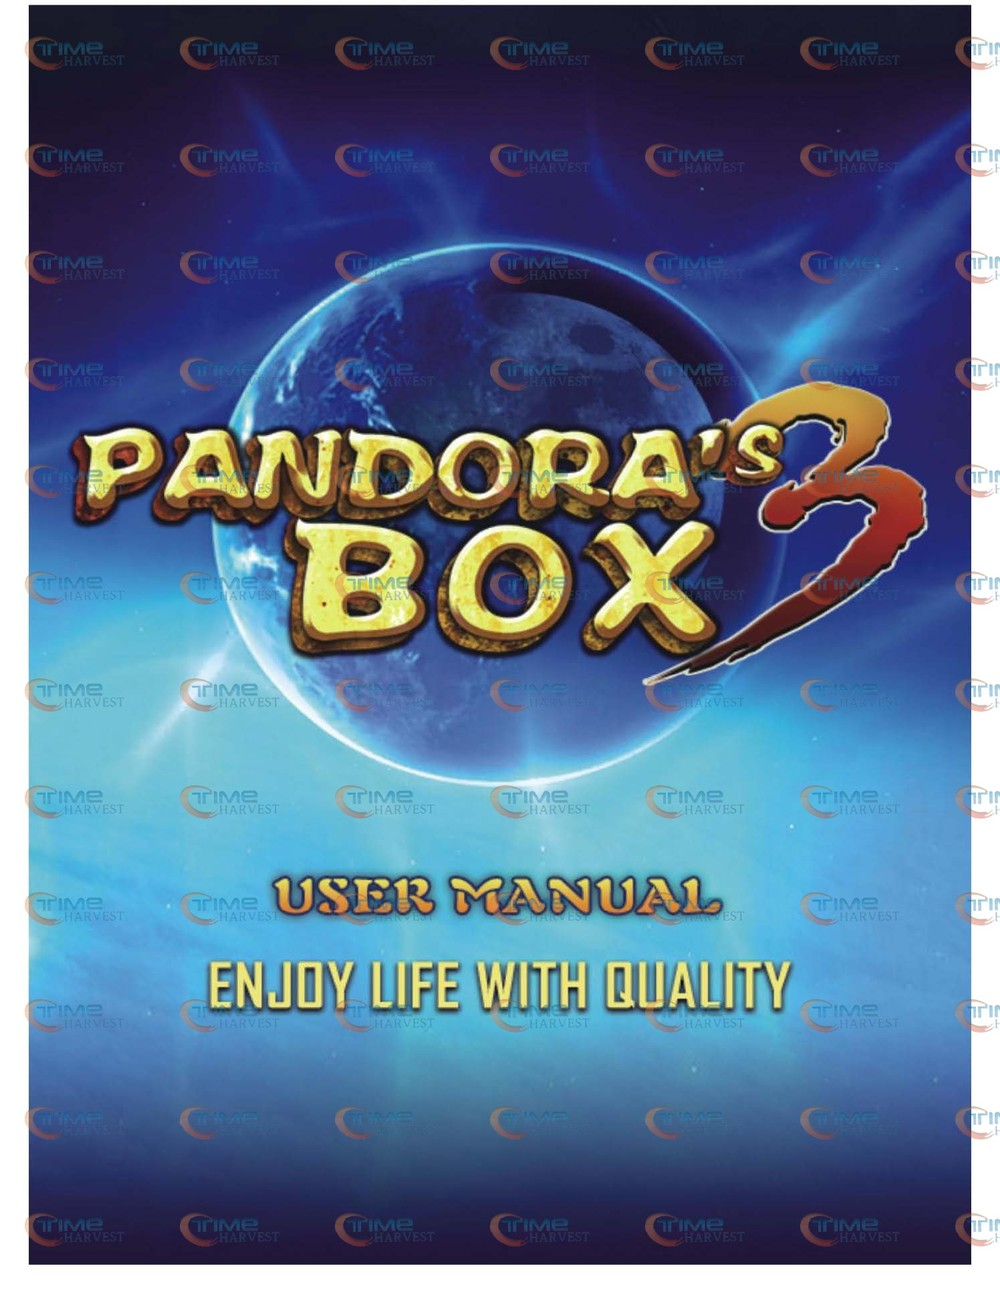 pandora's box3 user manual_1.jpg